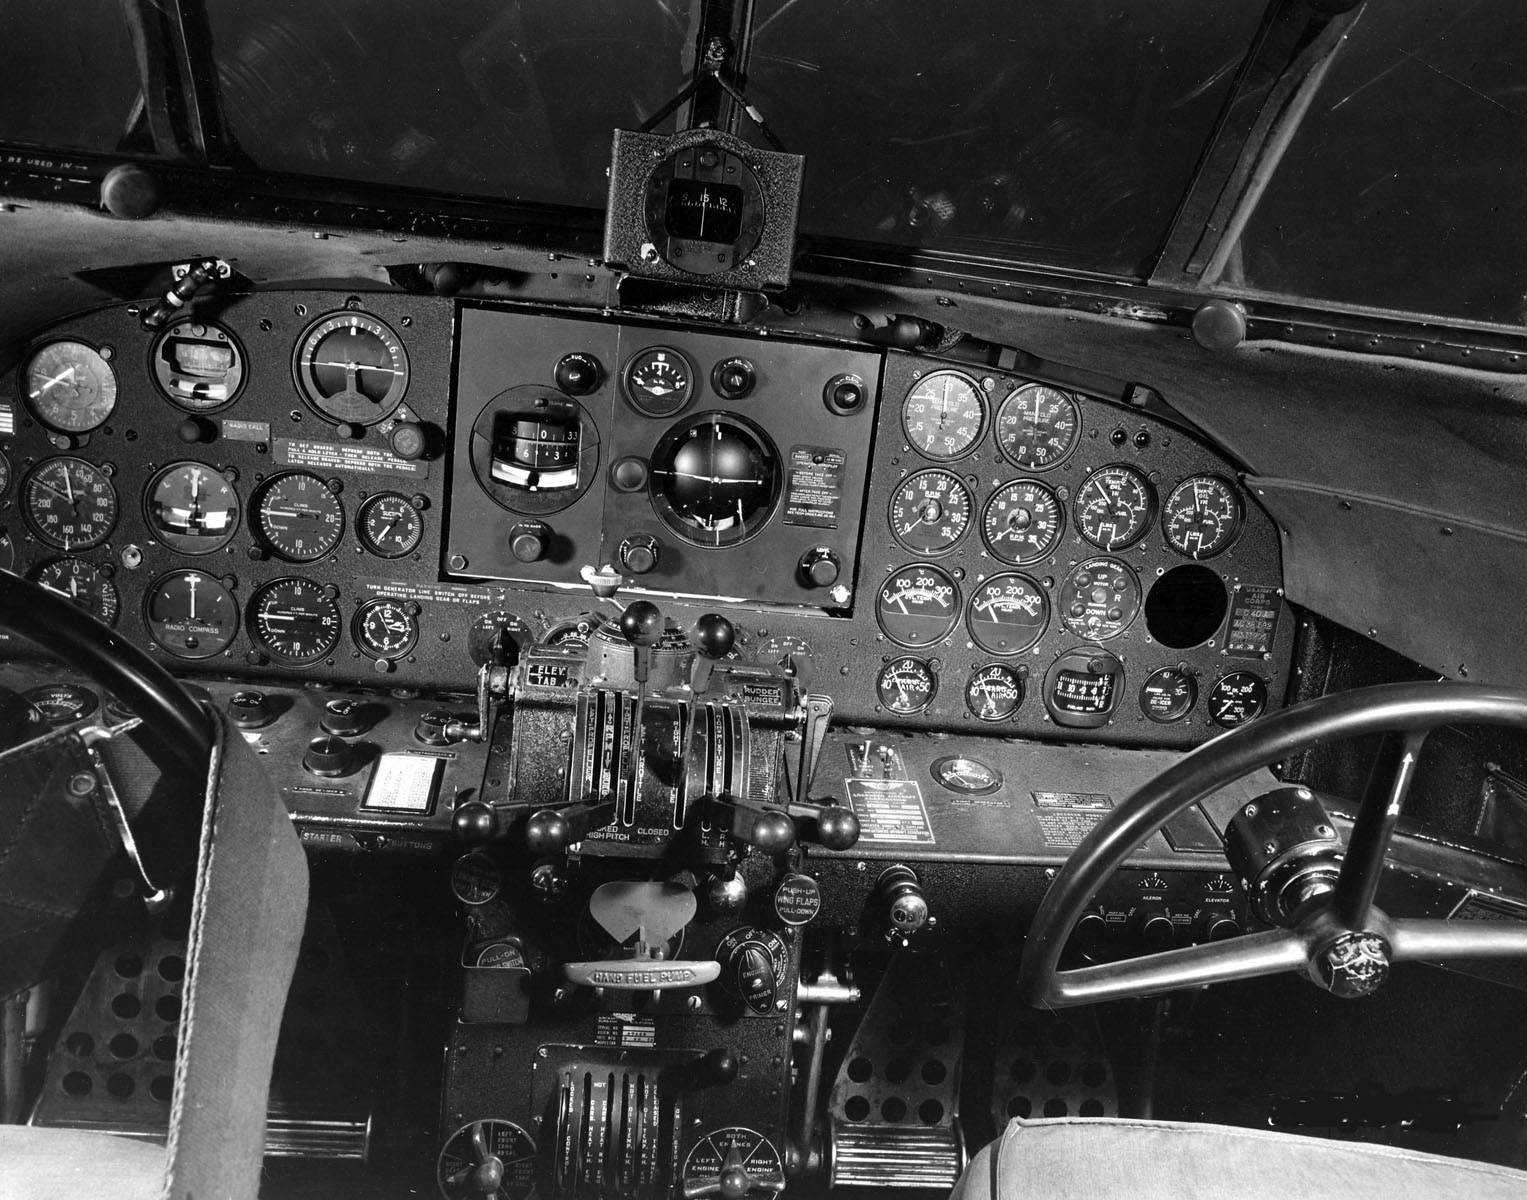 File:Lockheed C-40A cockpit.jpg - Wikimedia Commons